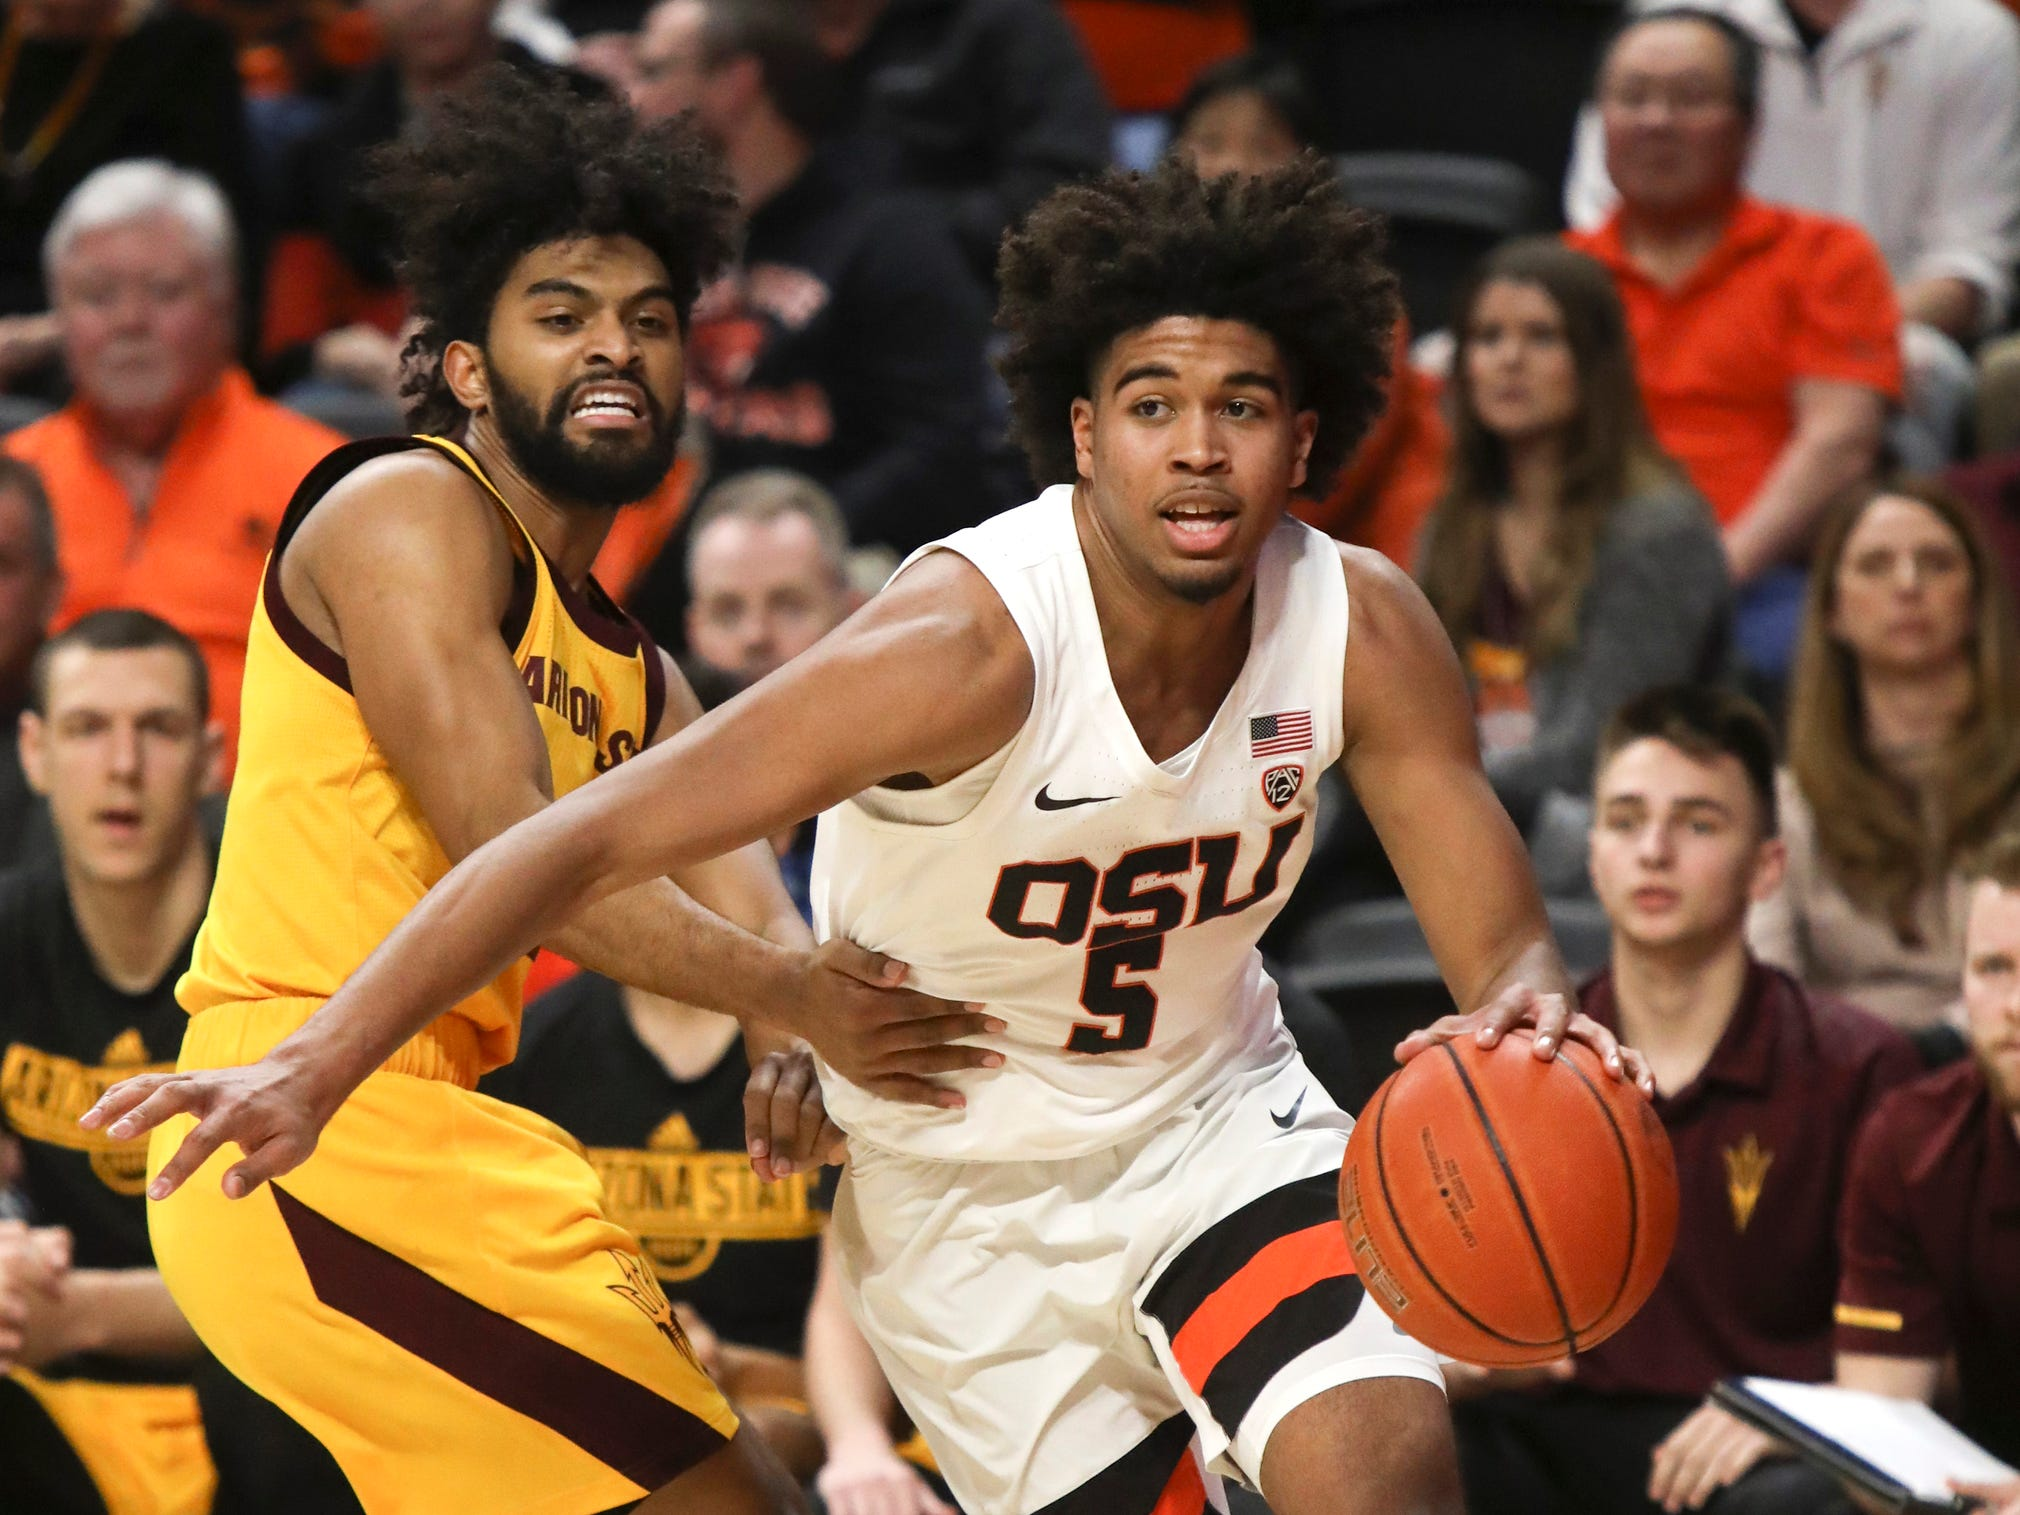 Oregon State's Ethan Thompson (5) slips past Arizona State's Remy Martin (1) during the first half of an NCAA college basketball game in Corvallis, Ore., Sunday, March 3, 2019.